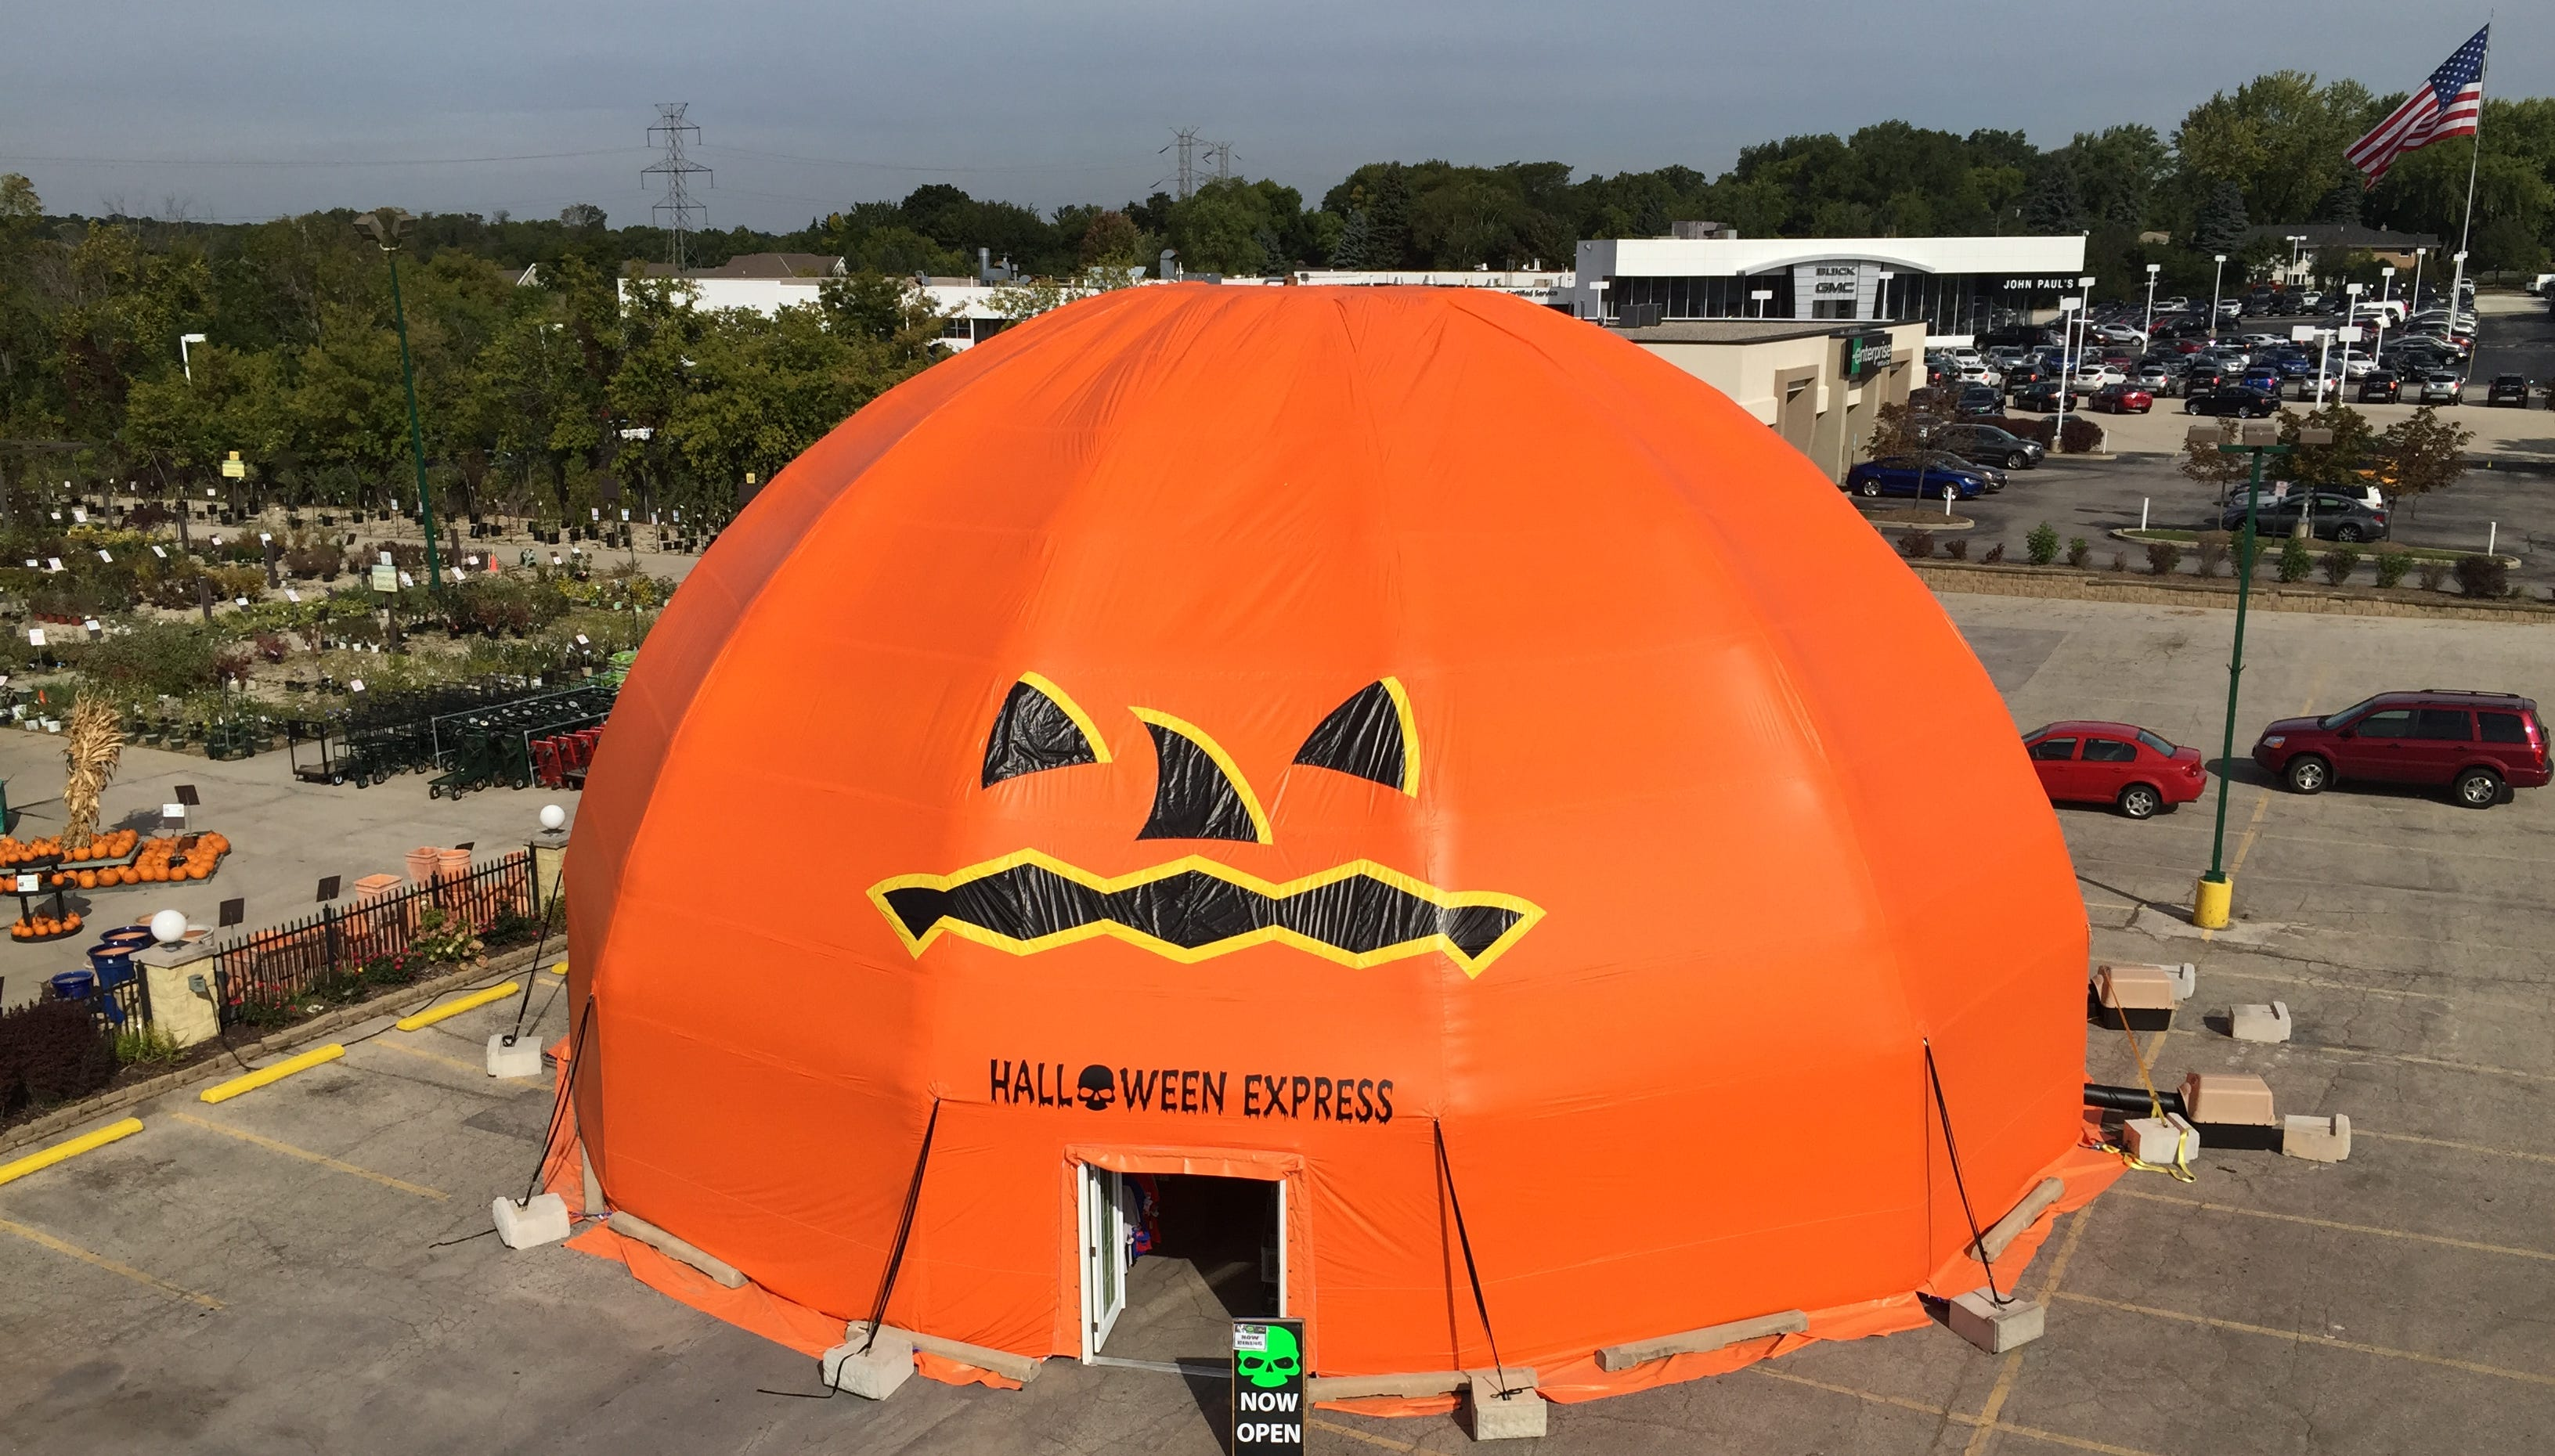 inflated pumpkin collapse prompts lawsuithalloween store's insurer